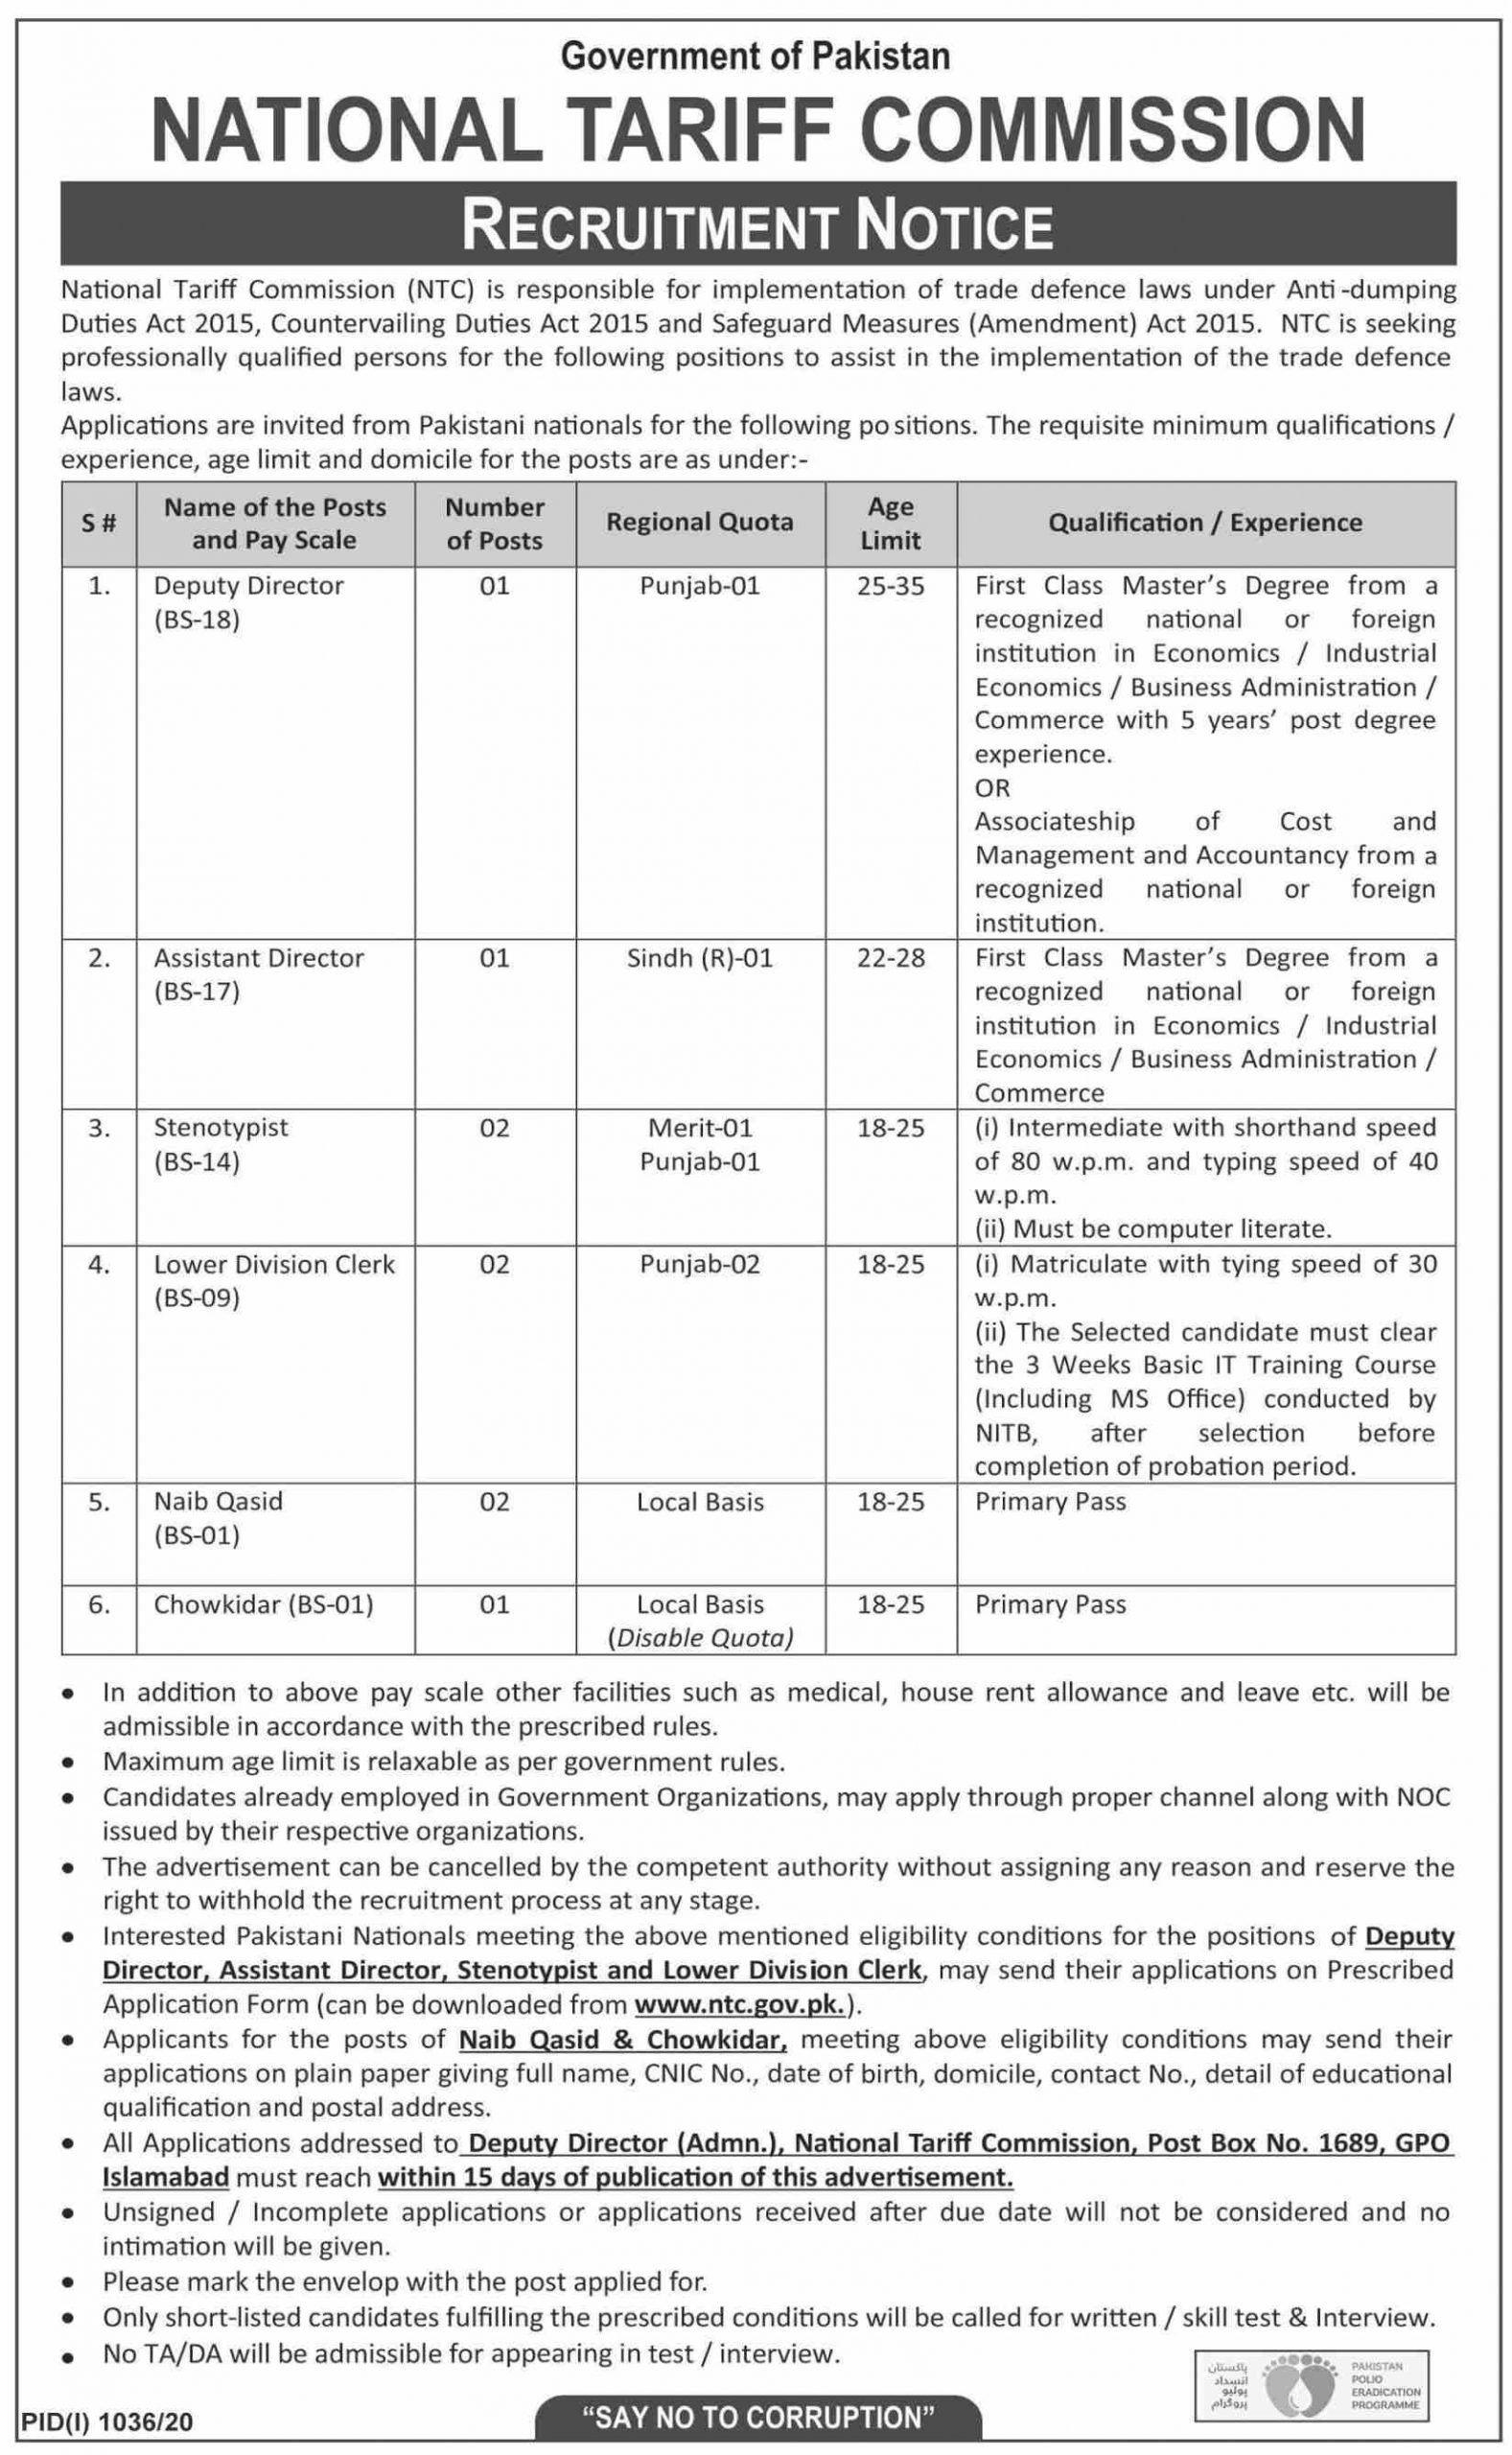 Government of Pakistan National Tariff Commission Jobs August 2020